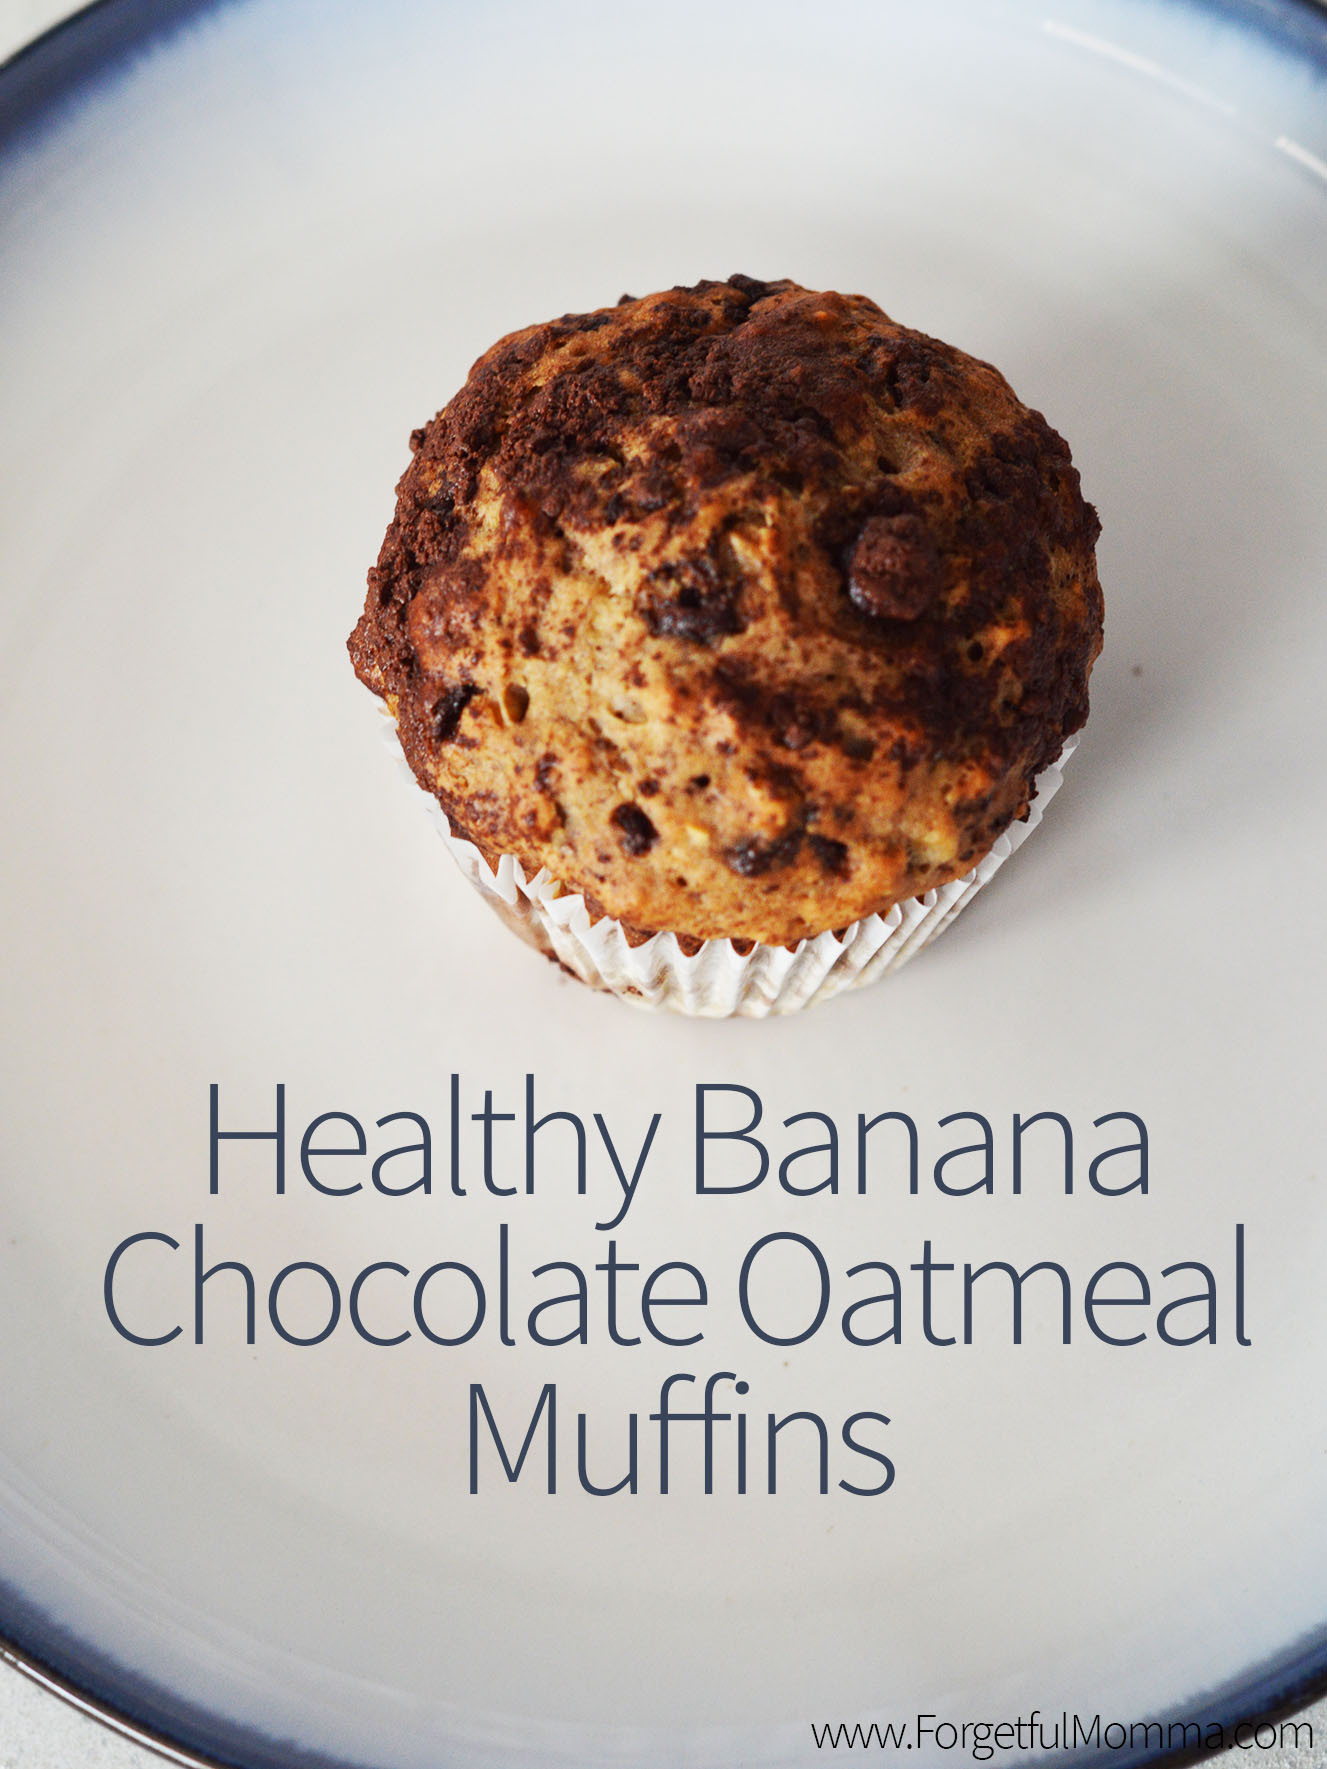 Healthy Chocolate Muffins Oatmeal  Healthy Banana Chocolate Oatmeal Muffins For ful Momma